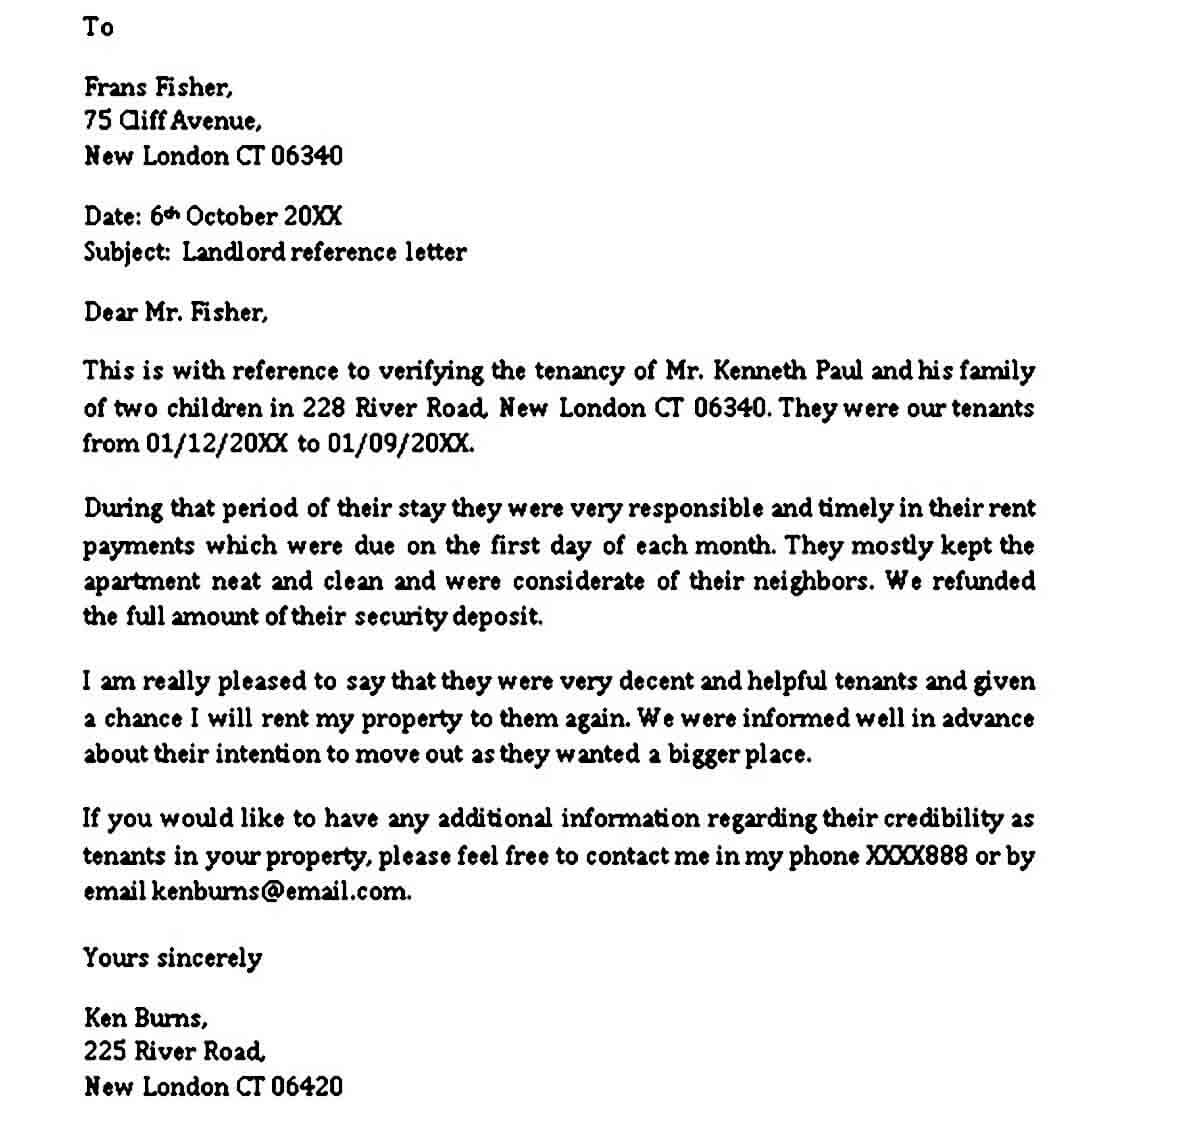 Letter Of Reference For Tenancy from moussyusa.com